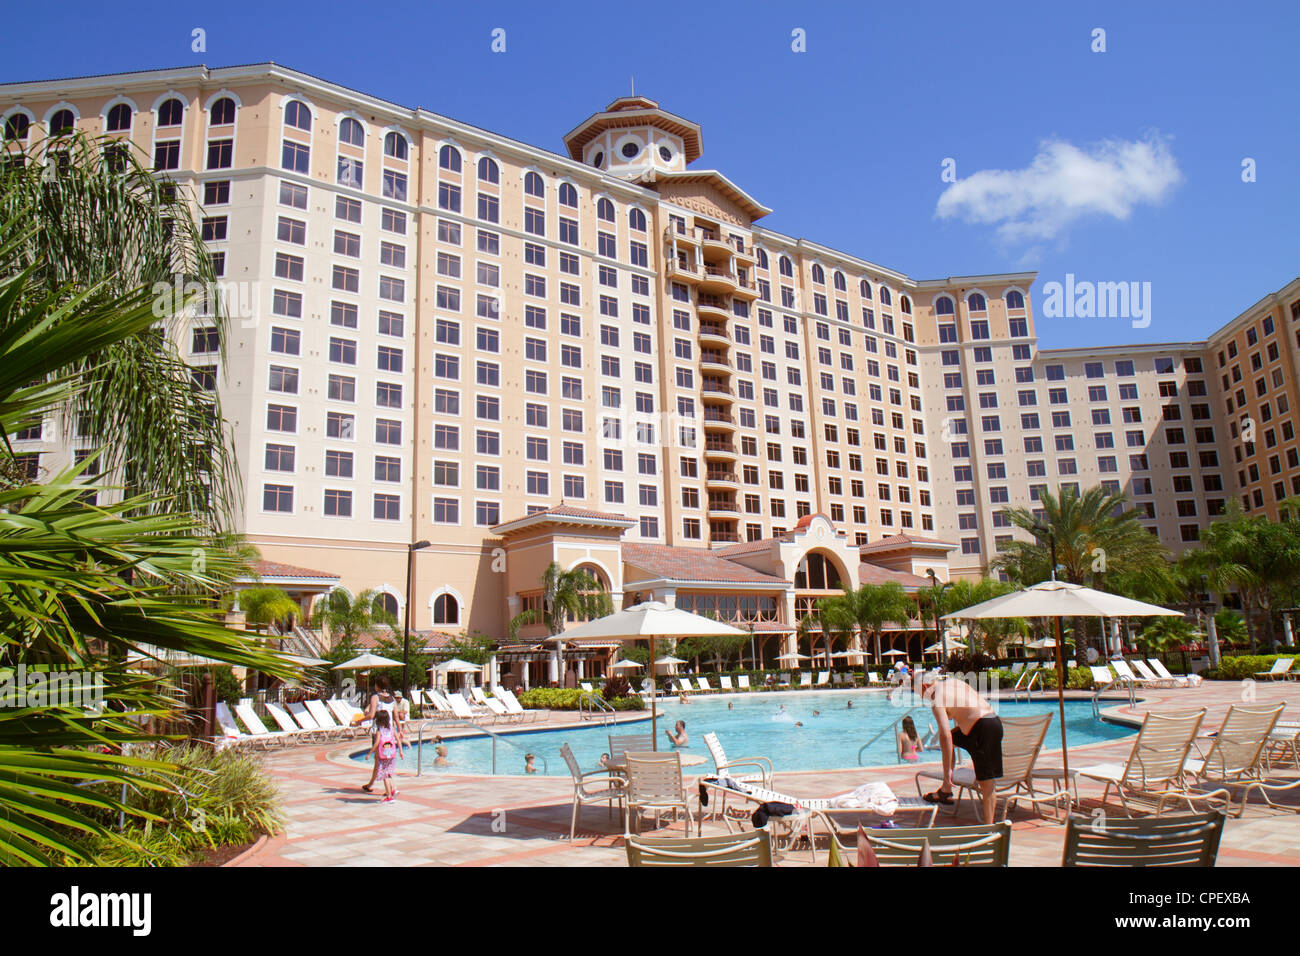 hotel in orlando stock photos & hotel in orlando stock images - alamy